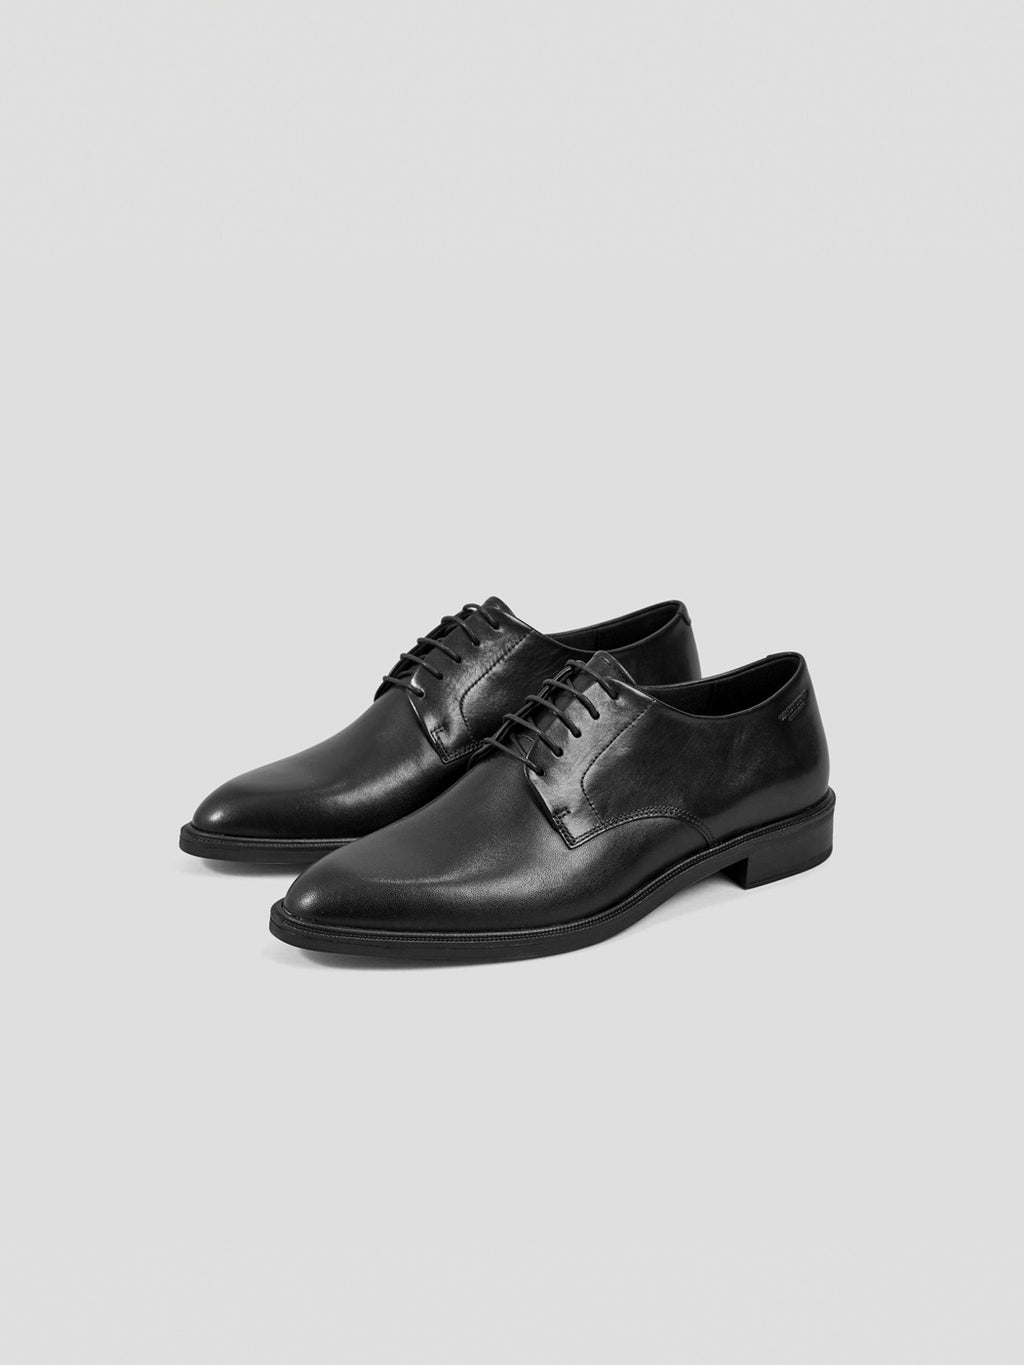 3/4 front view: Take on the new season in a pair of classic and sophisticated derby lace-up shoes. These black leather Frances shoes have a slender last and are set on a slightly raised heel, measuring 29mm. The sleek design features a pointy toe and timeless derby lacing.